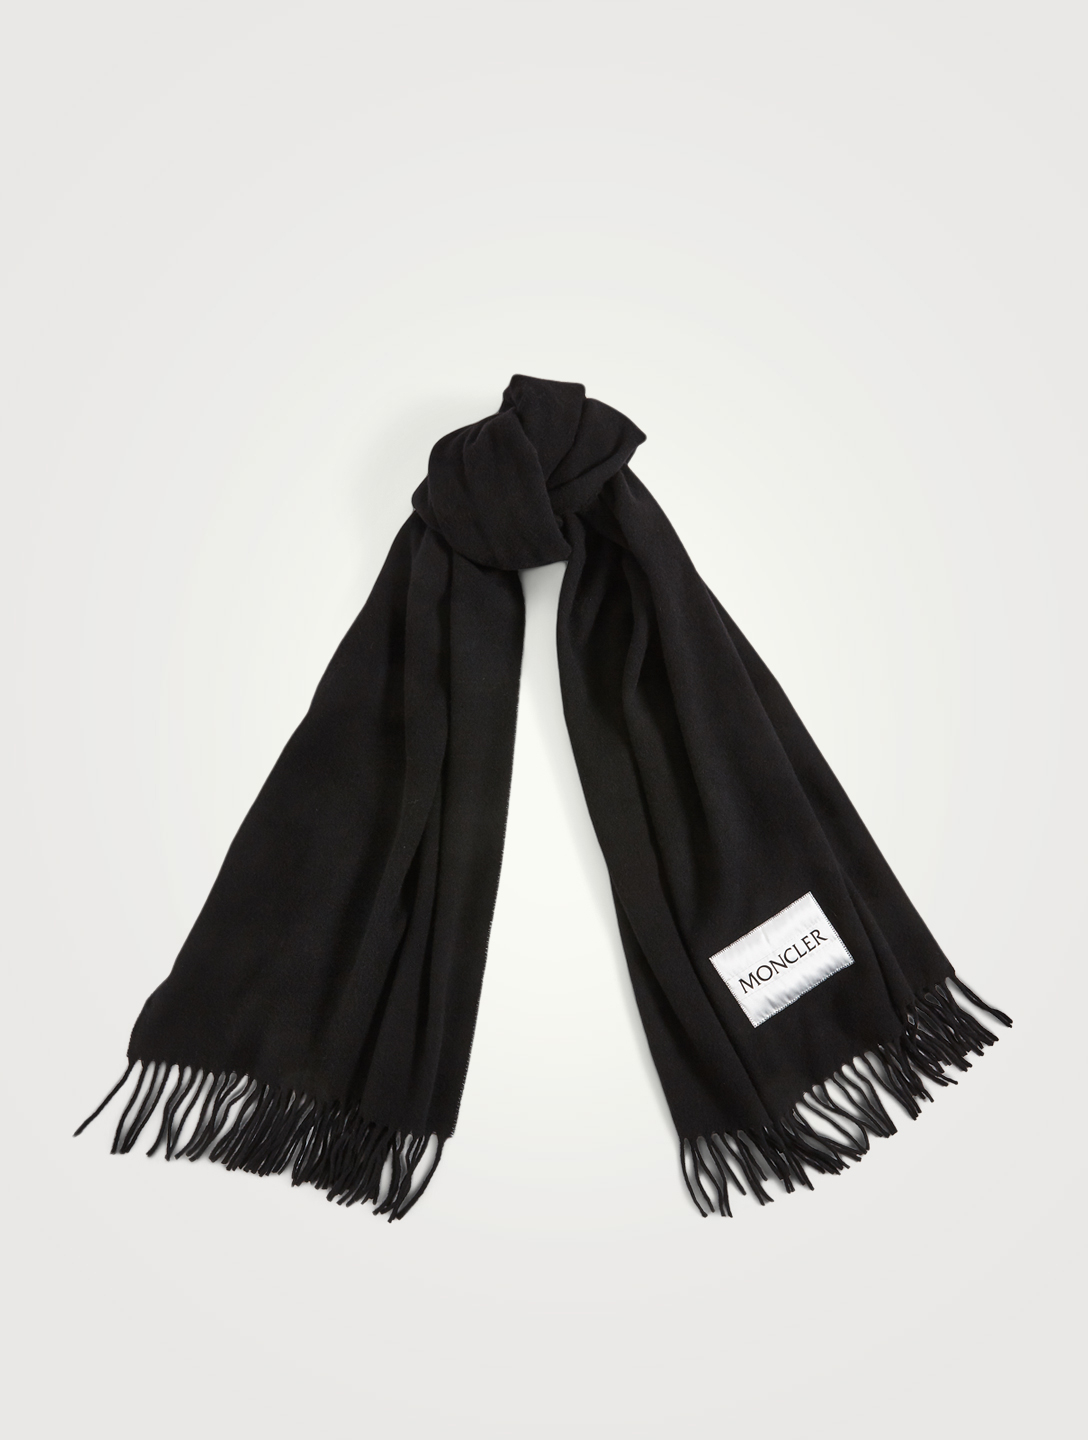 MONCLER Wool Scarf With Logo Women's Black